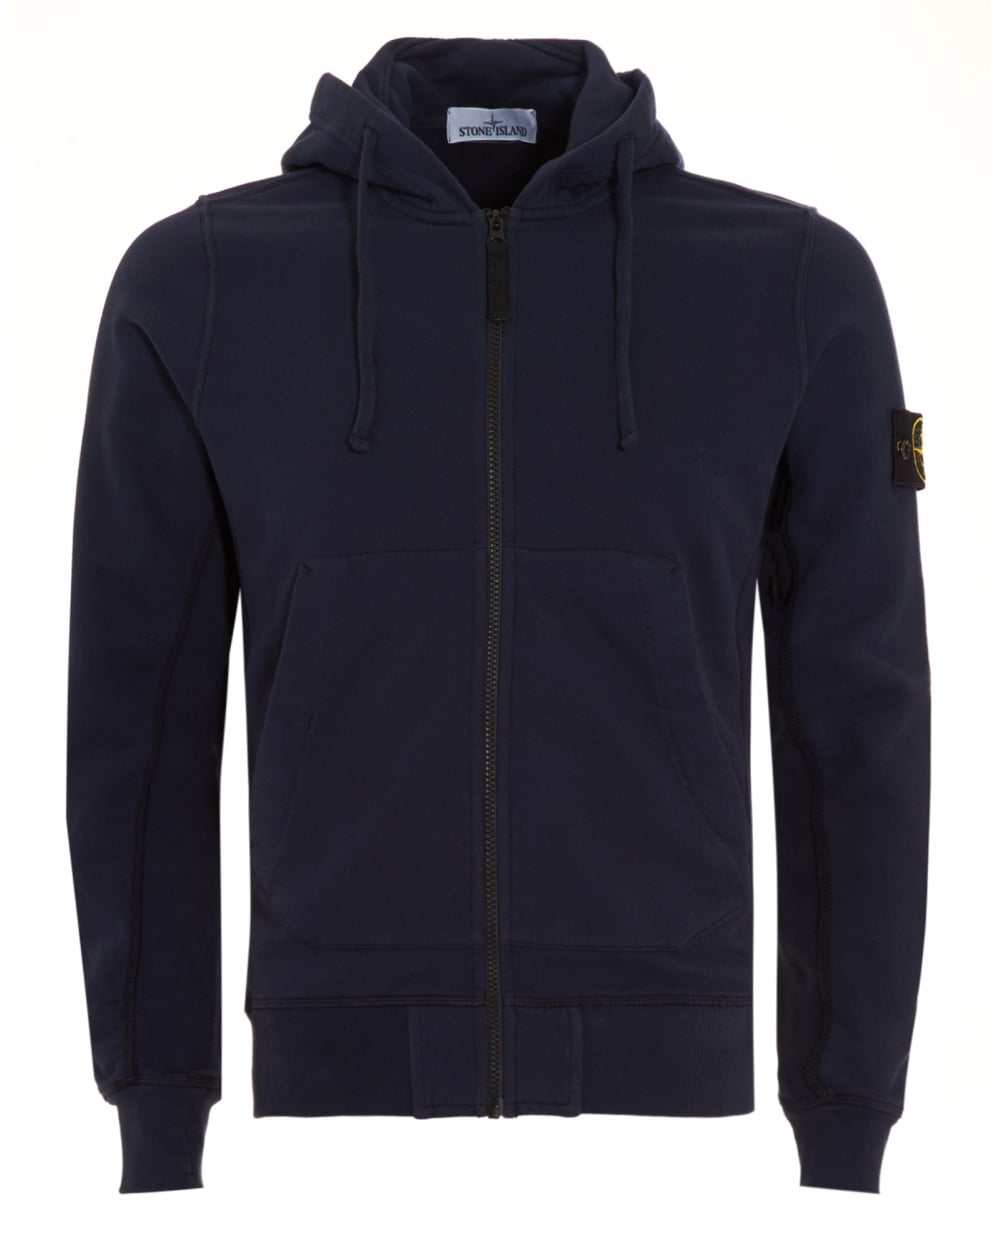 stone island mens hoodie navy blue zip hooded sweatshirt. Black Bedroom Furniture Sets. Home Design Ideas